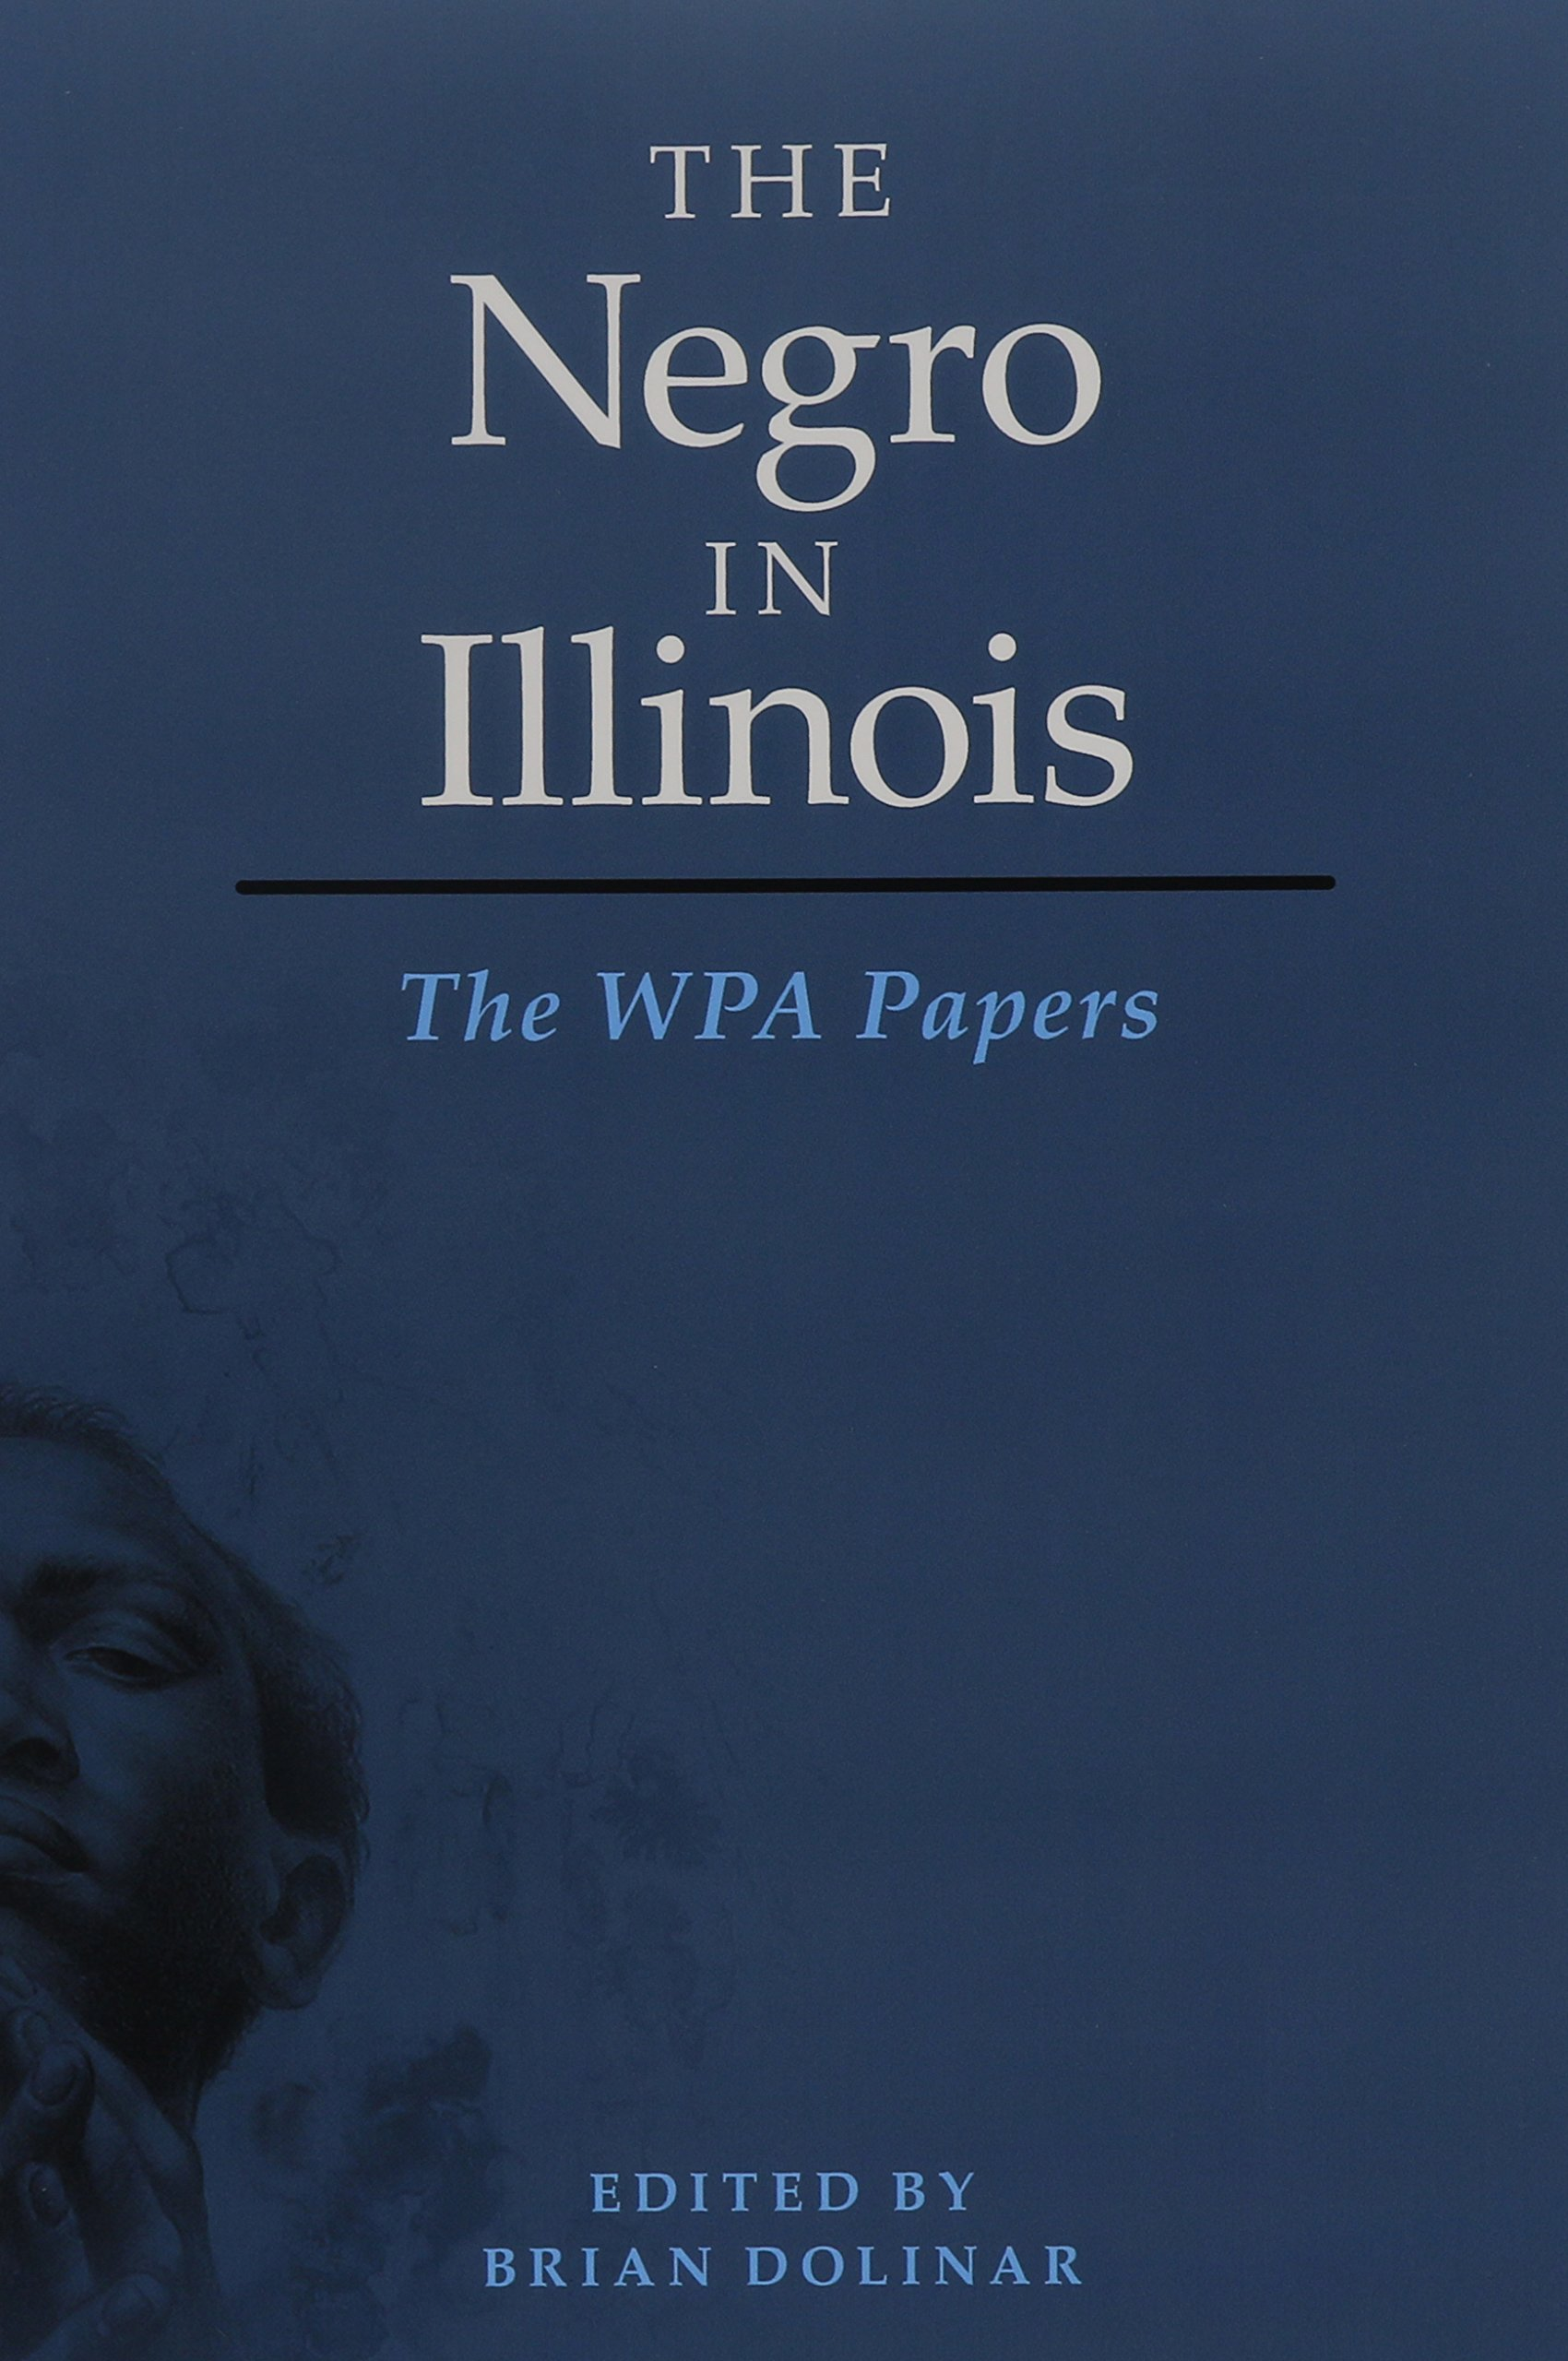 Read Online The Negro in Illinois: The WPA Papers (New Black Studies Series) ebook